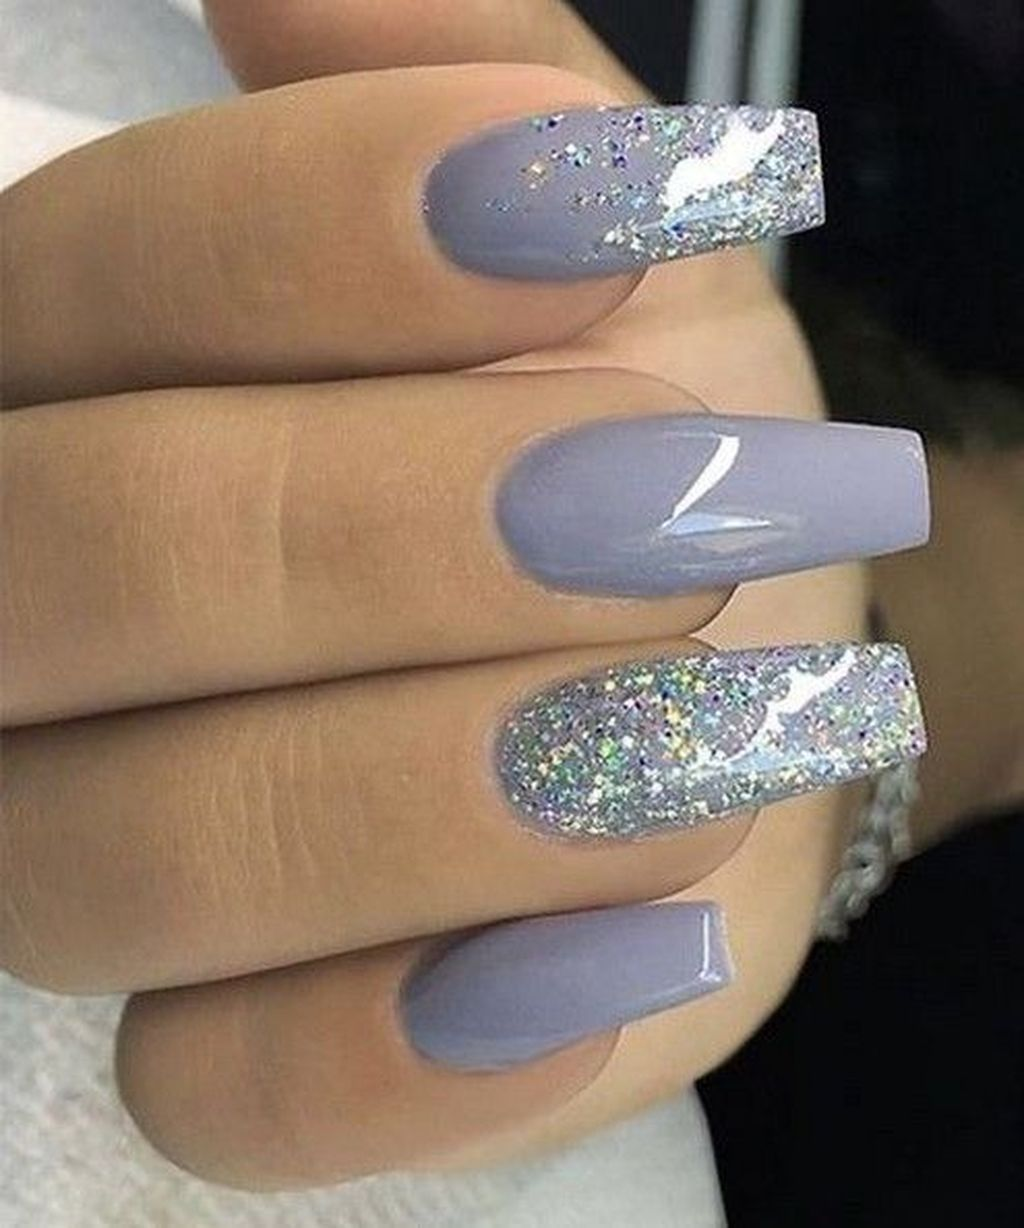 30 Inspiring Winter Nails Color Trend 2019 Color Inspiring Nails Trend Winter In 2020 Winter Nails Acrylic Nail Colors Winter Nail Color Trends